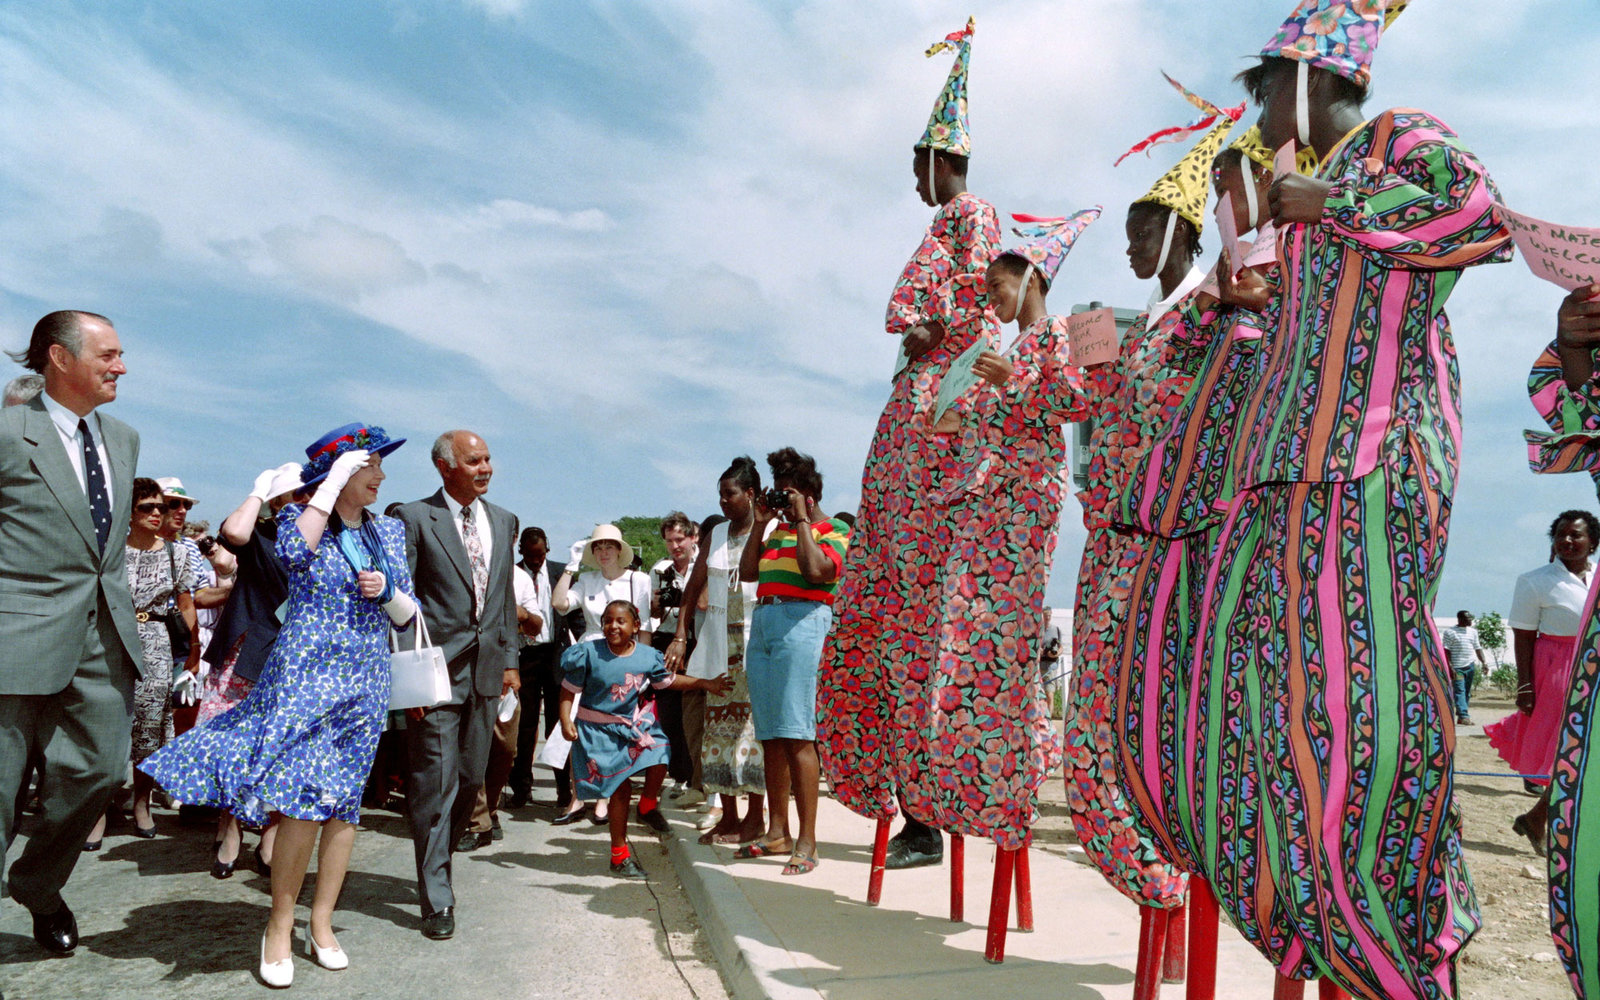 Queen Elizabeth II West Indies 1994